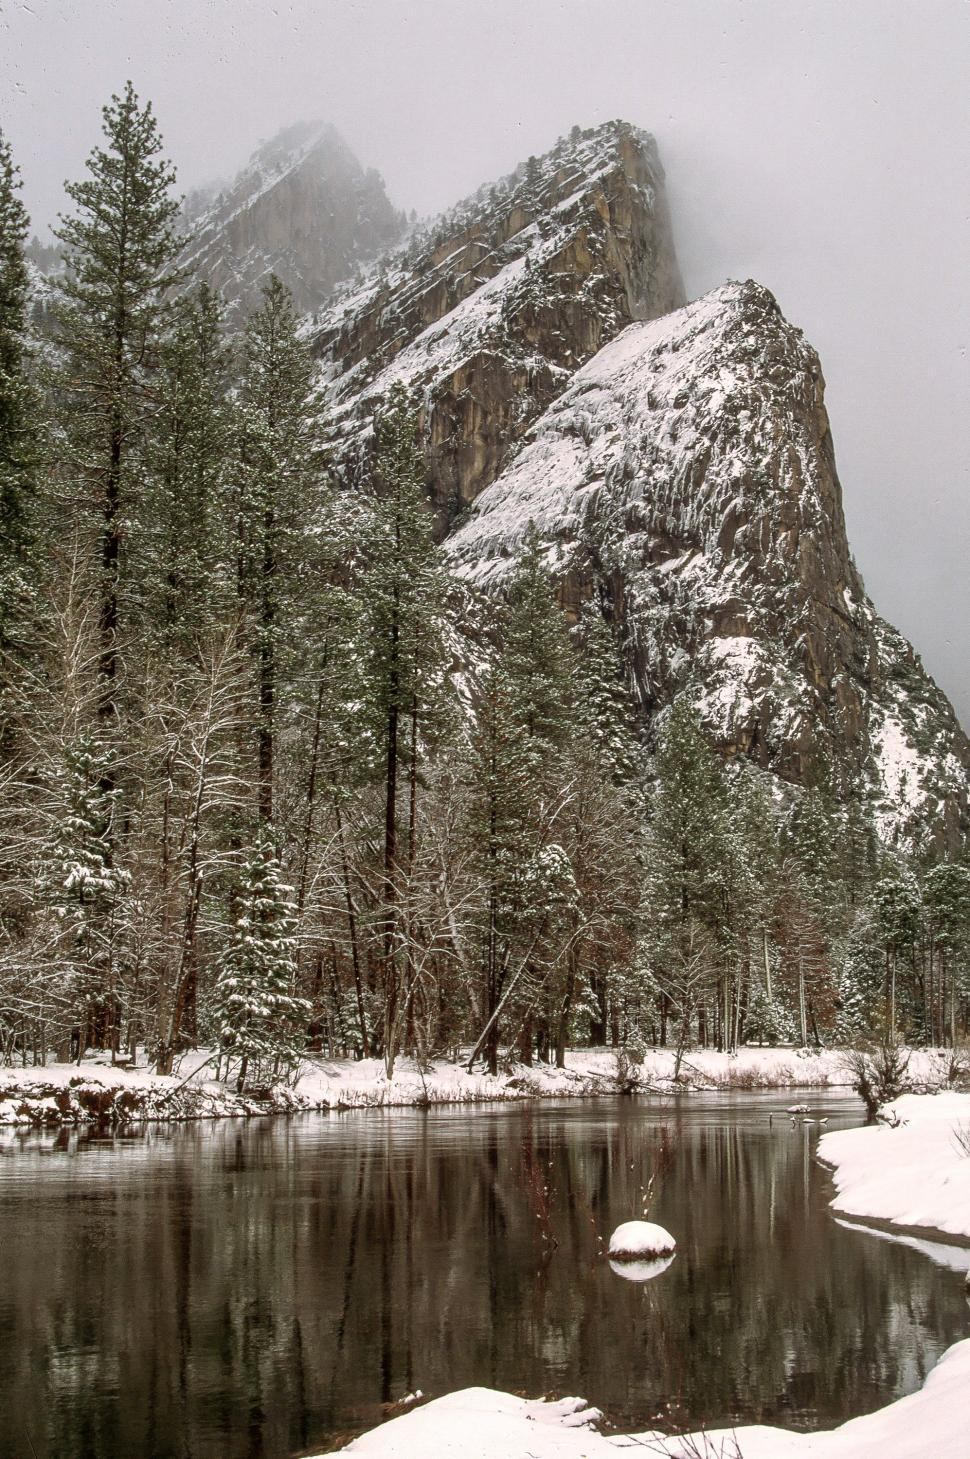 Download Free Stock HD Photo of Three Brothers Peak in Yosemite Valley Online